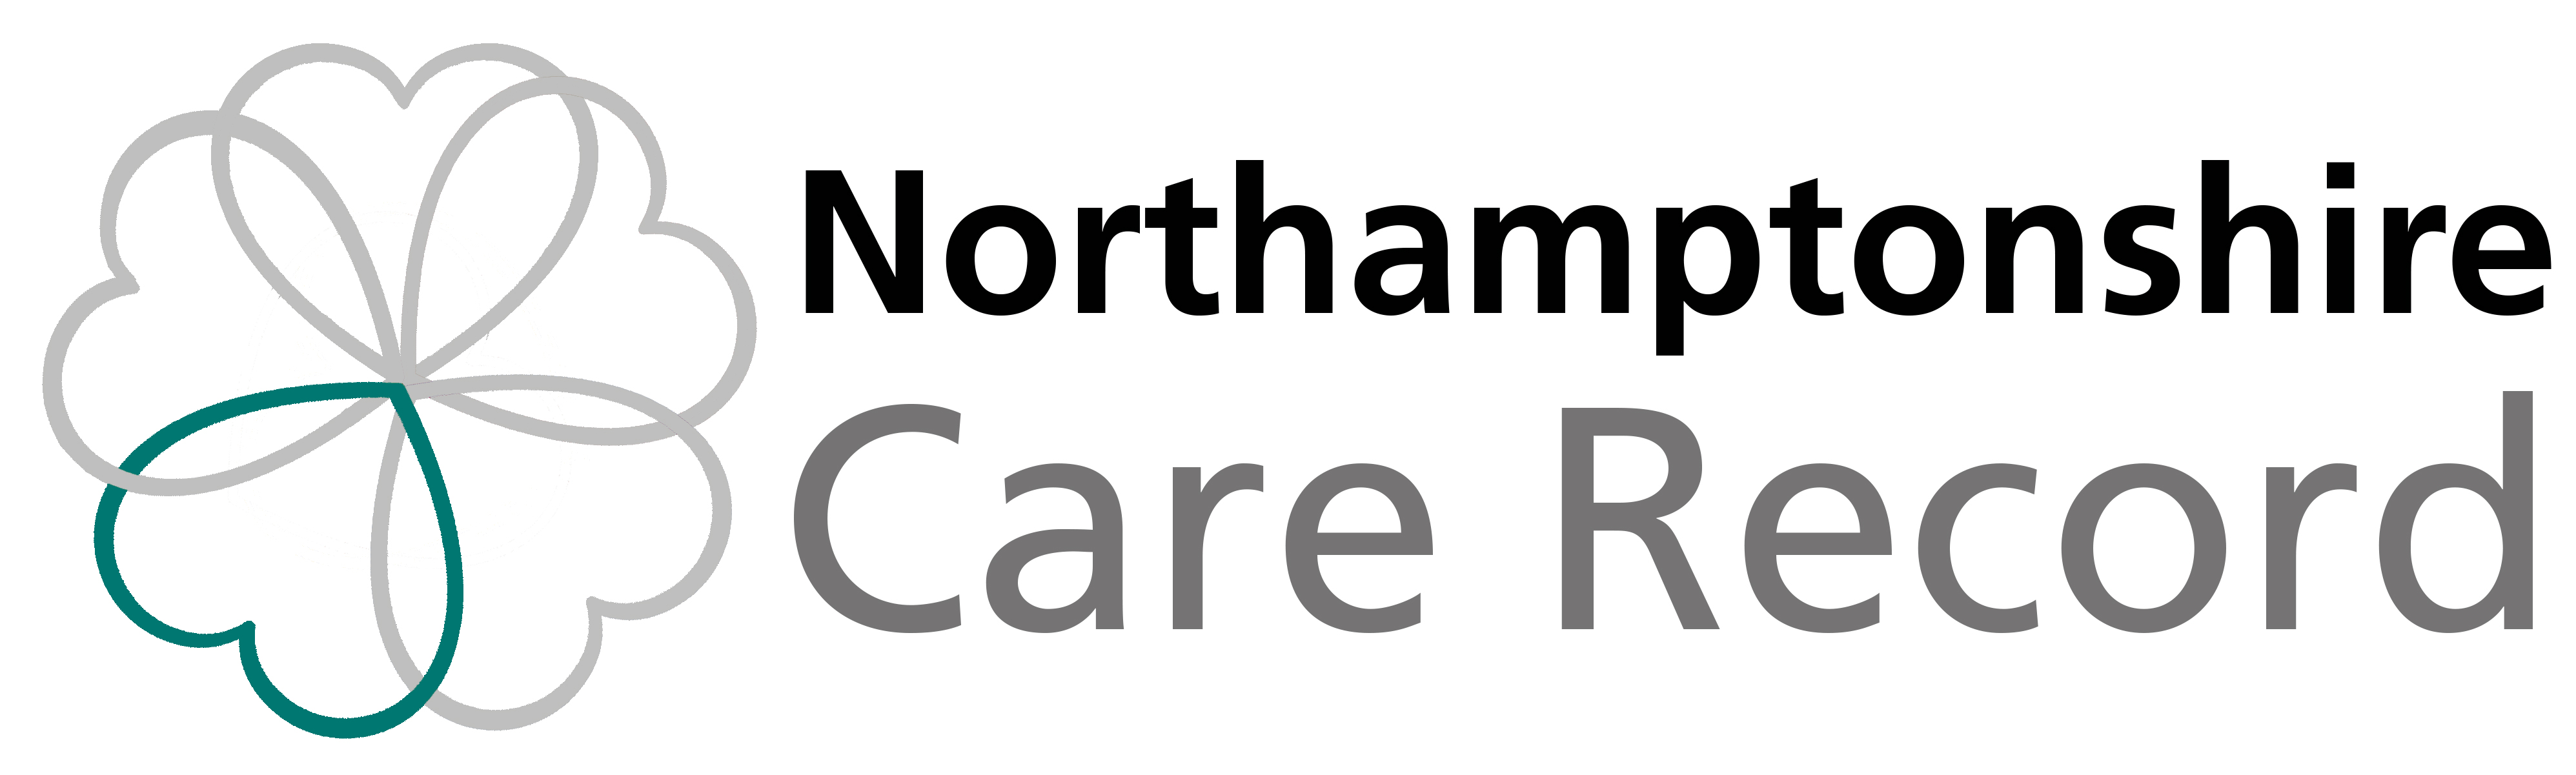 Work continues to deliver the new Northamptonshire Care Record (NCR)